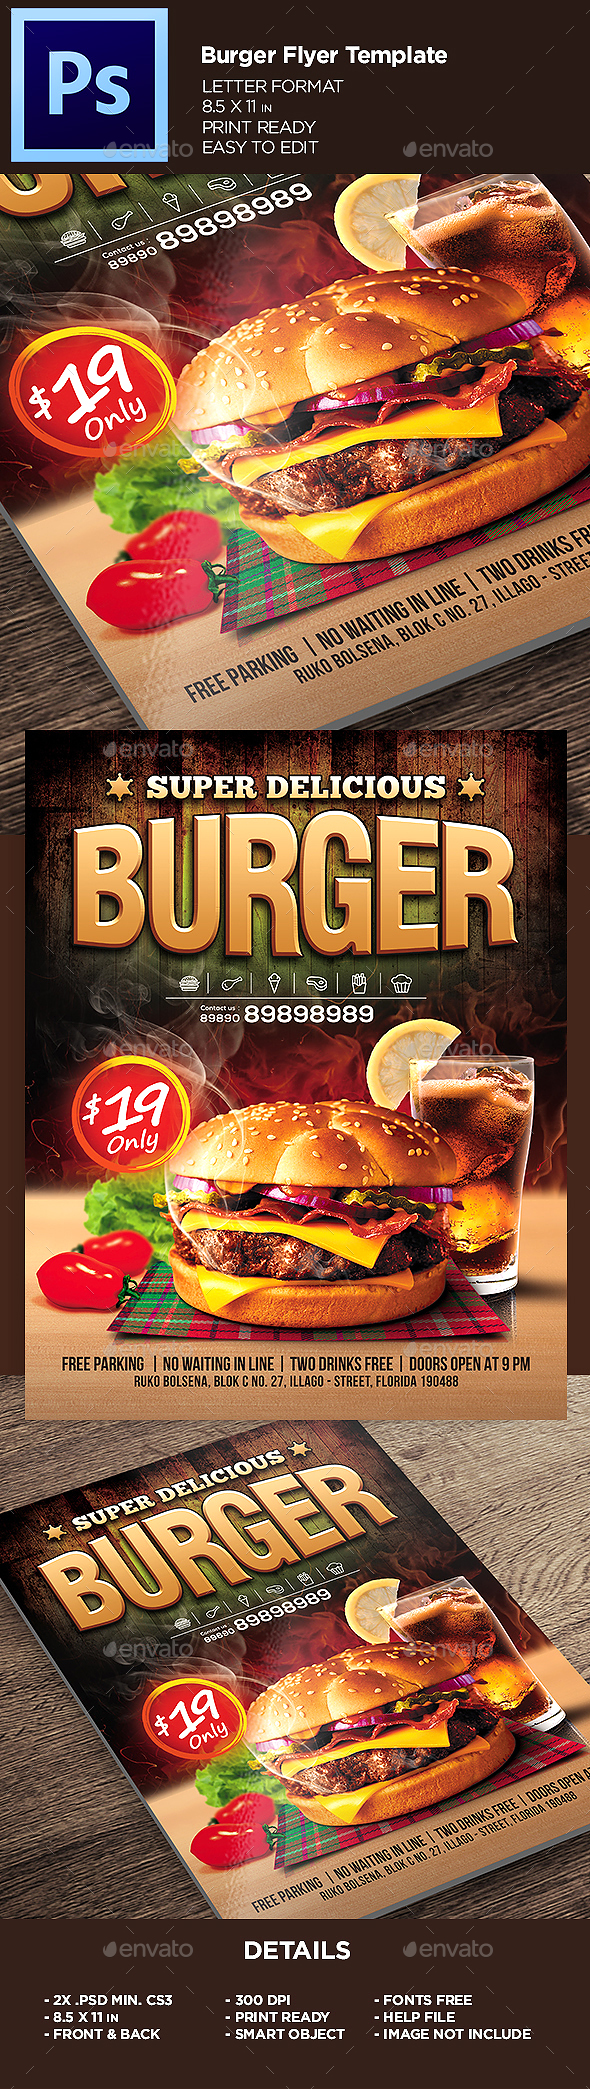 Burger Flyer Template - Restaurant Flyers